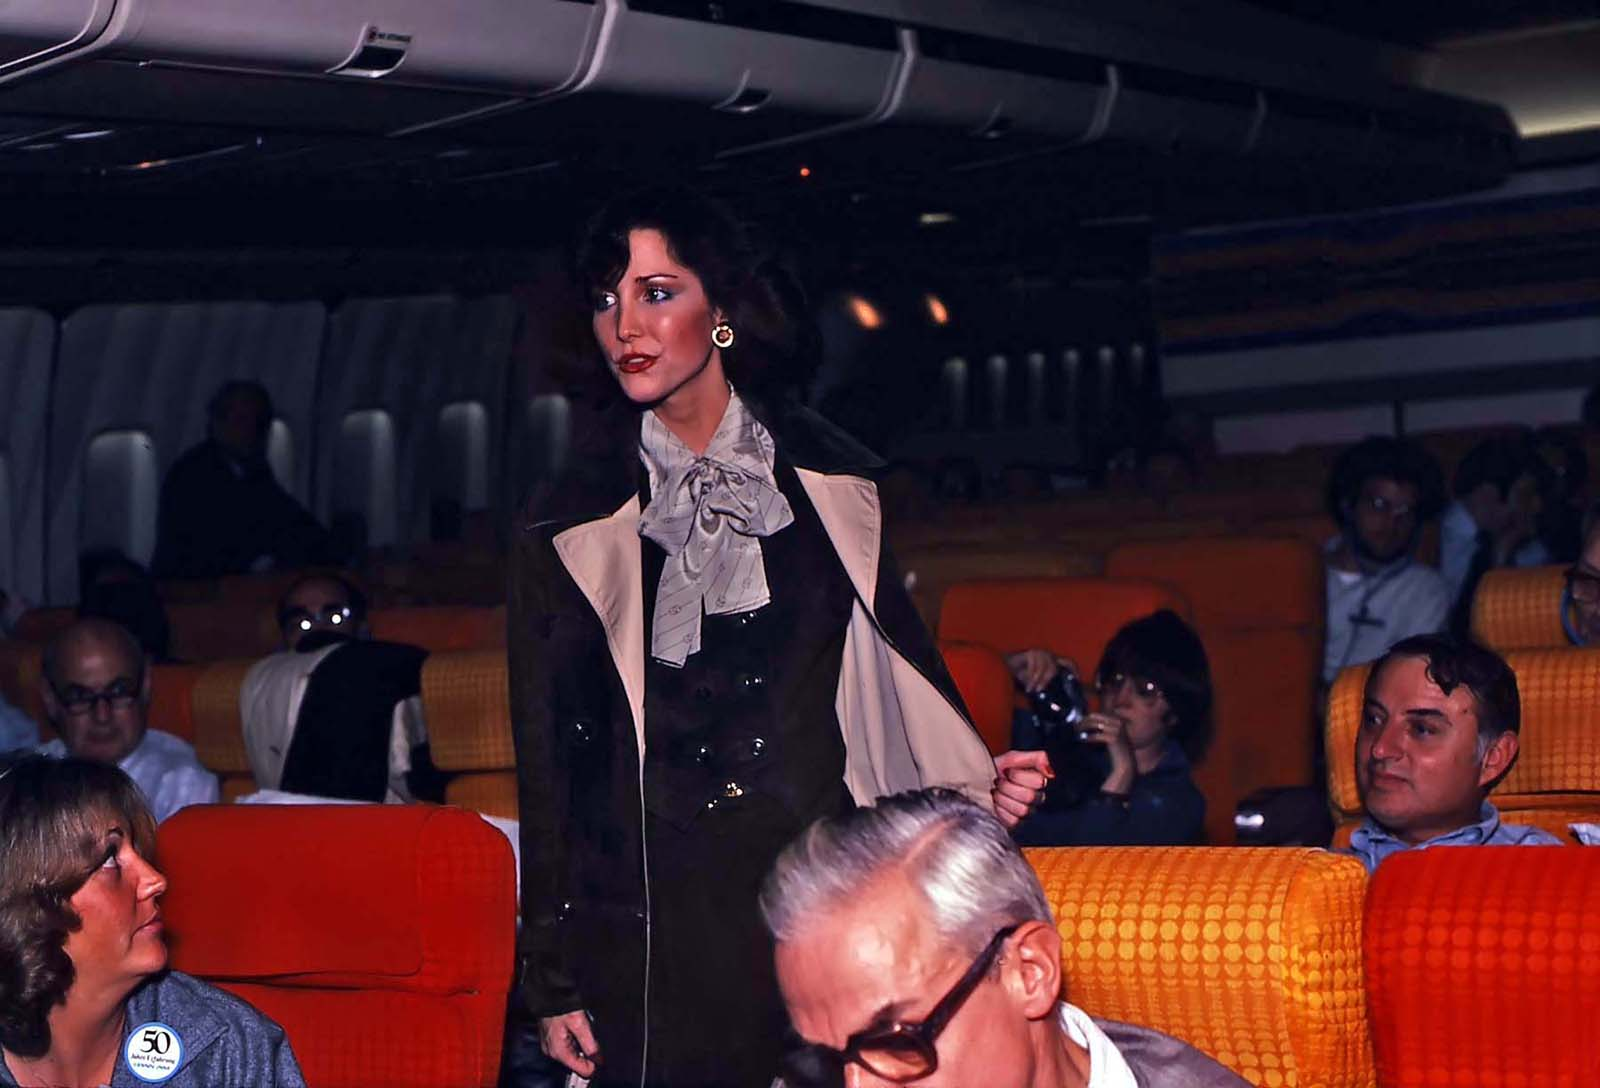 Flight attendants who accomplished the feat in the name of human life